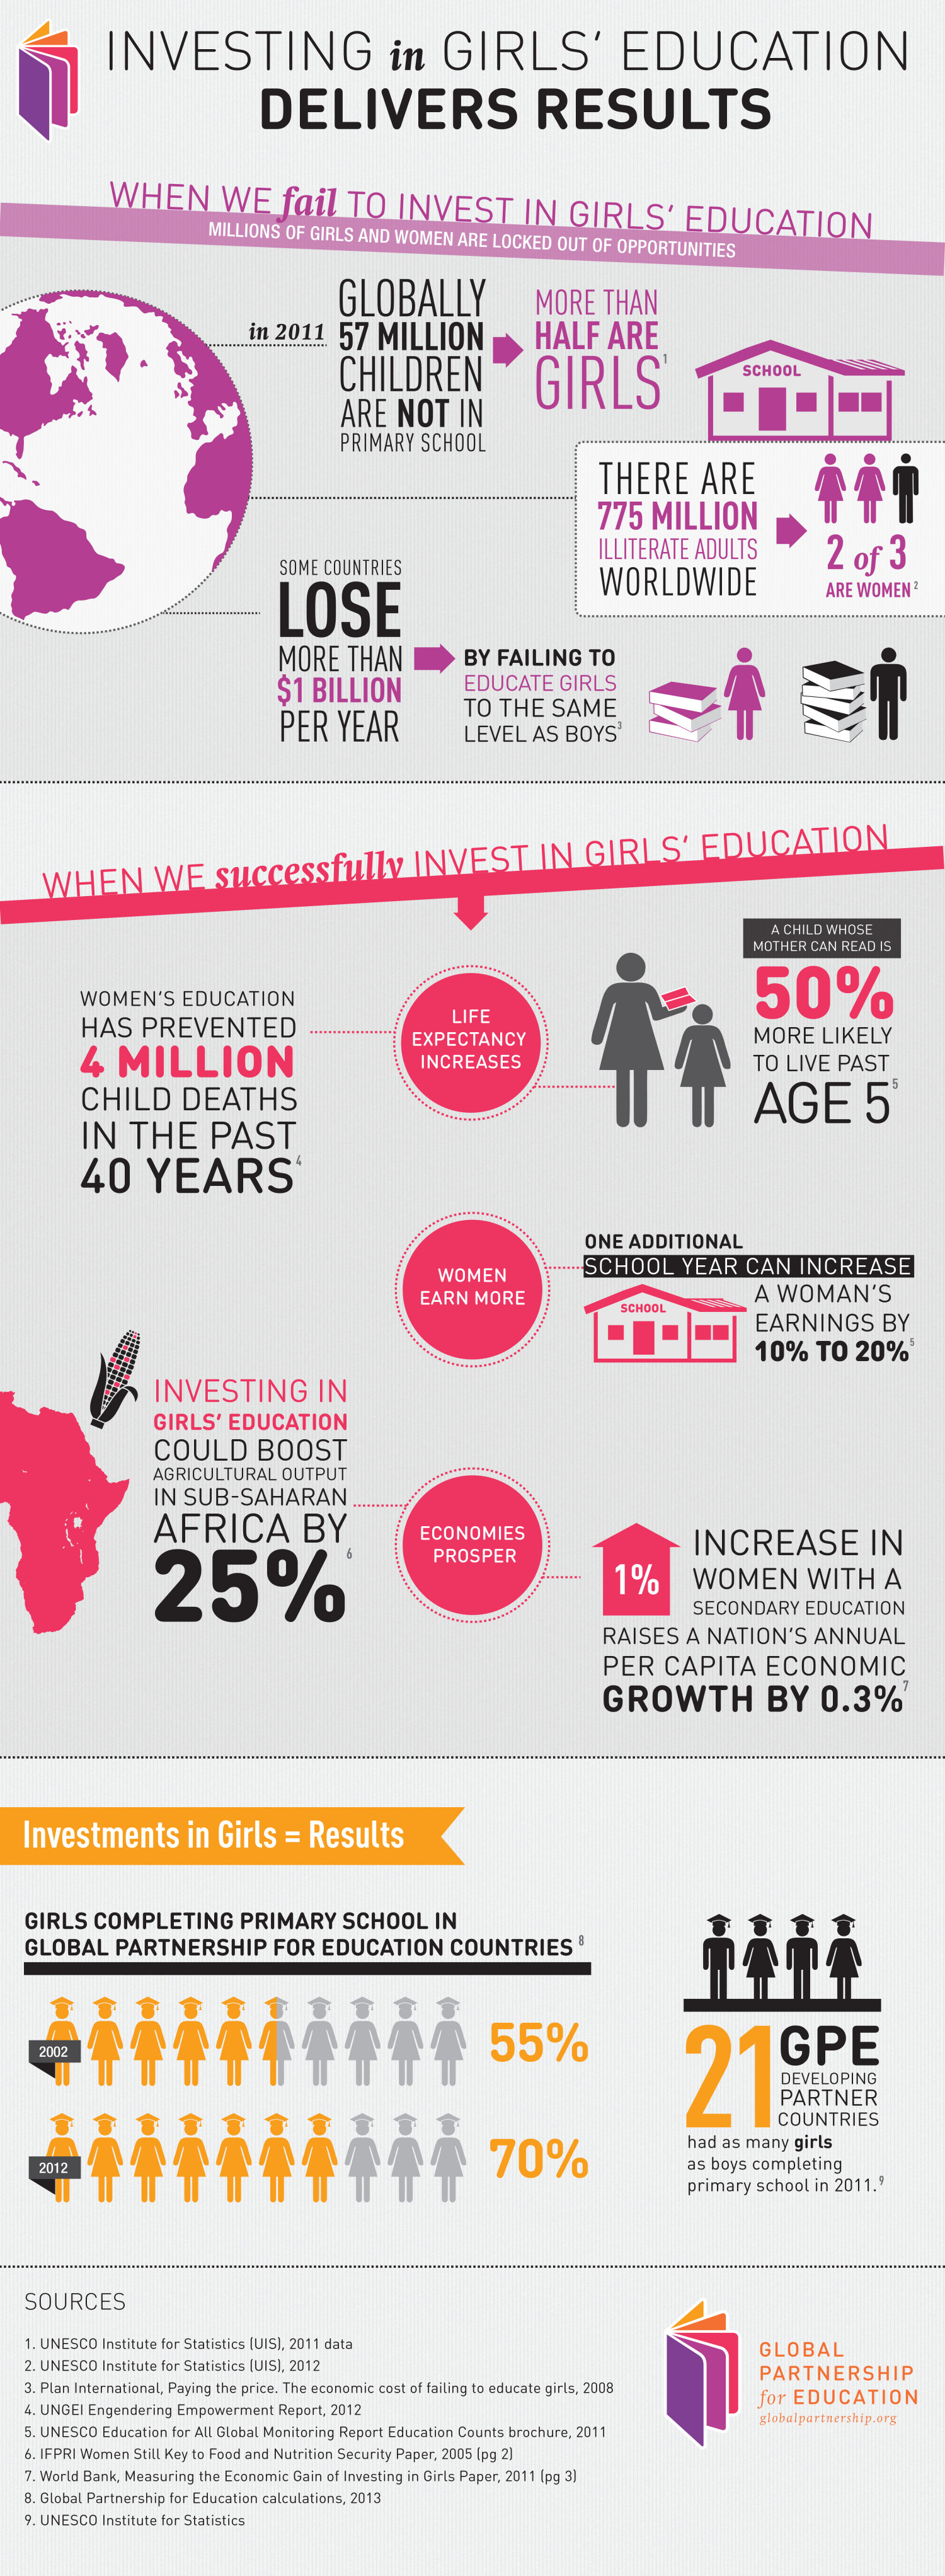 Investing in Girls' Education Delivers Results Infographic